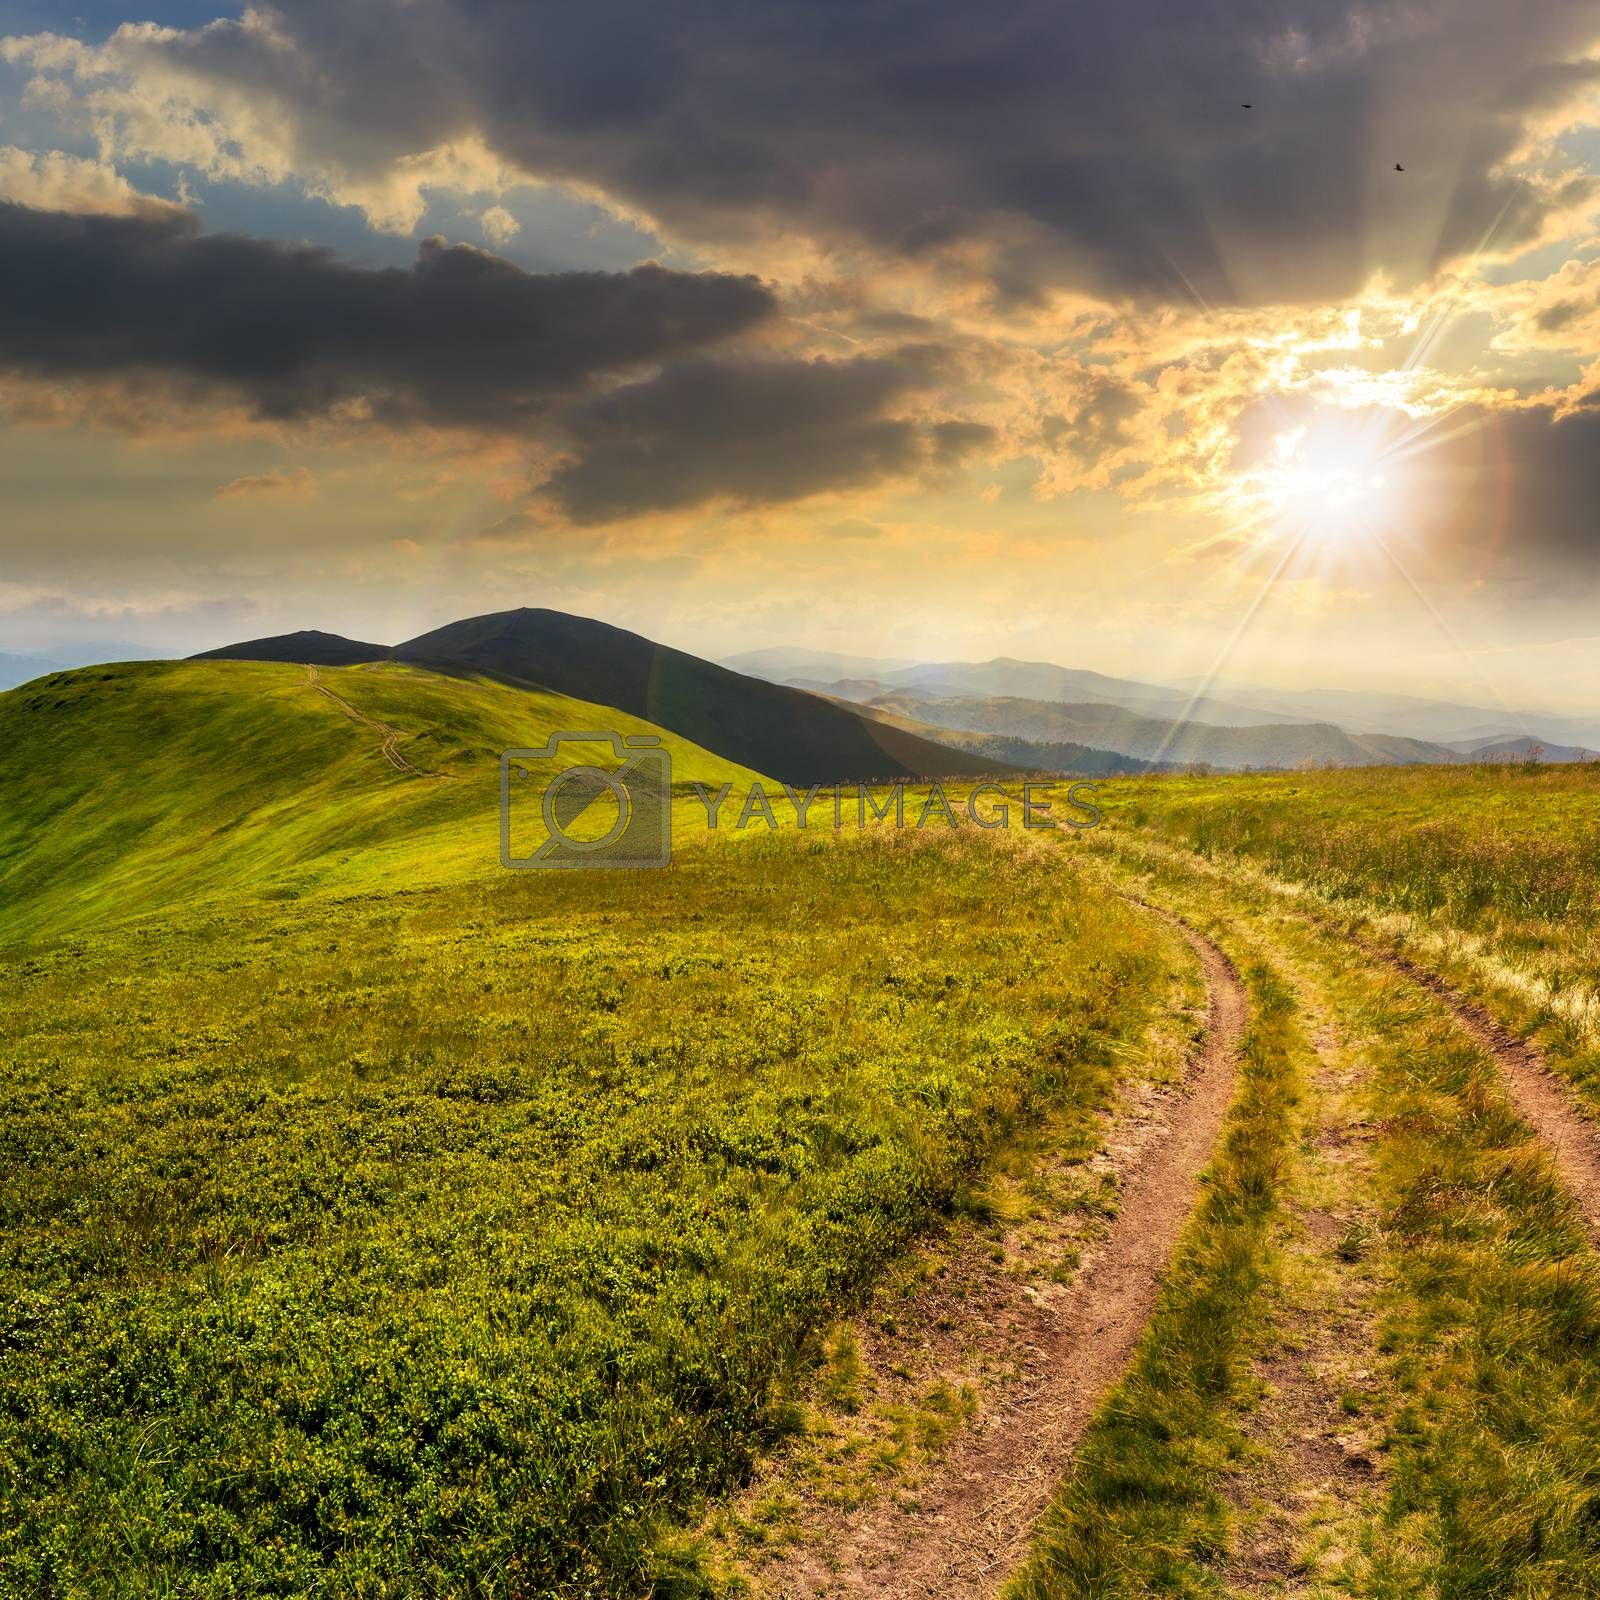 path on the mountain top at sunset by Pellinni